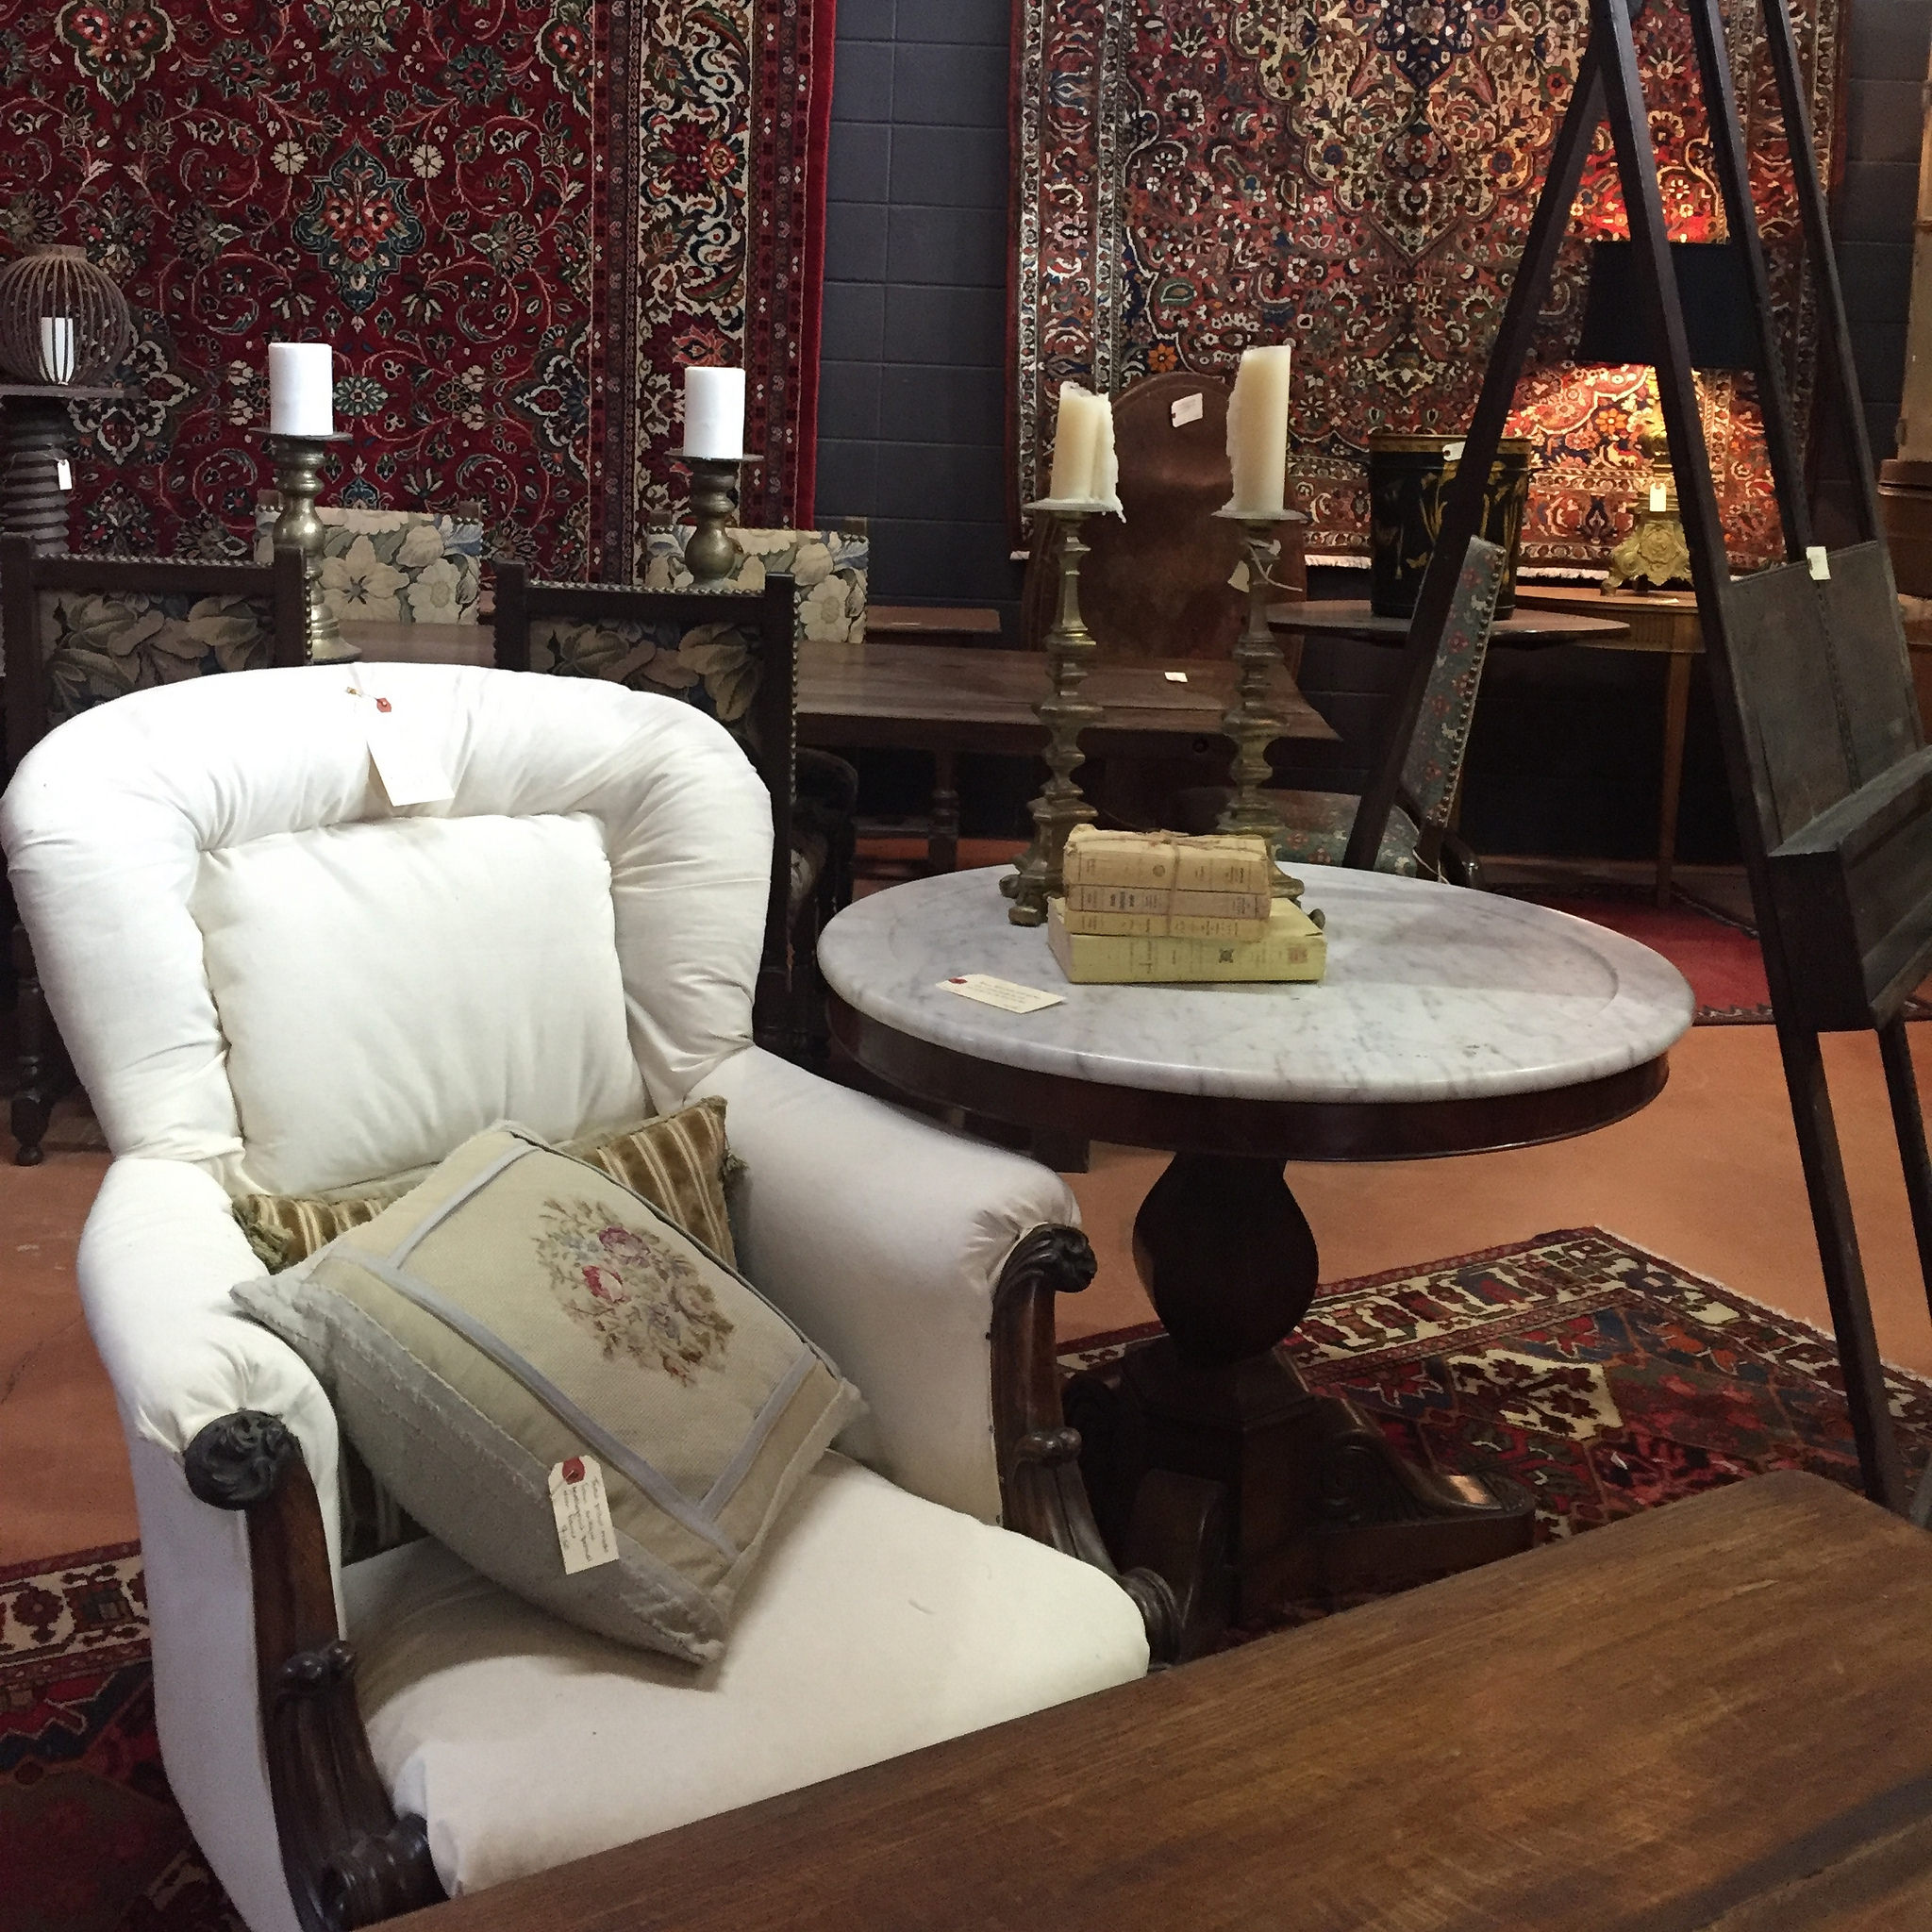 Antique English chair with vintage toss cushion sitting in front of large Persian rugs displayed on wall